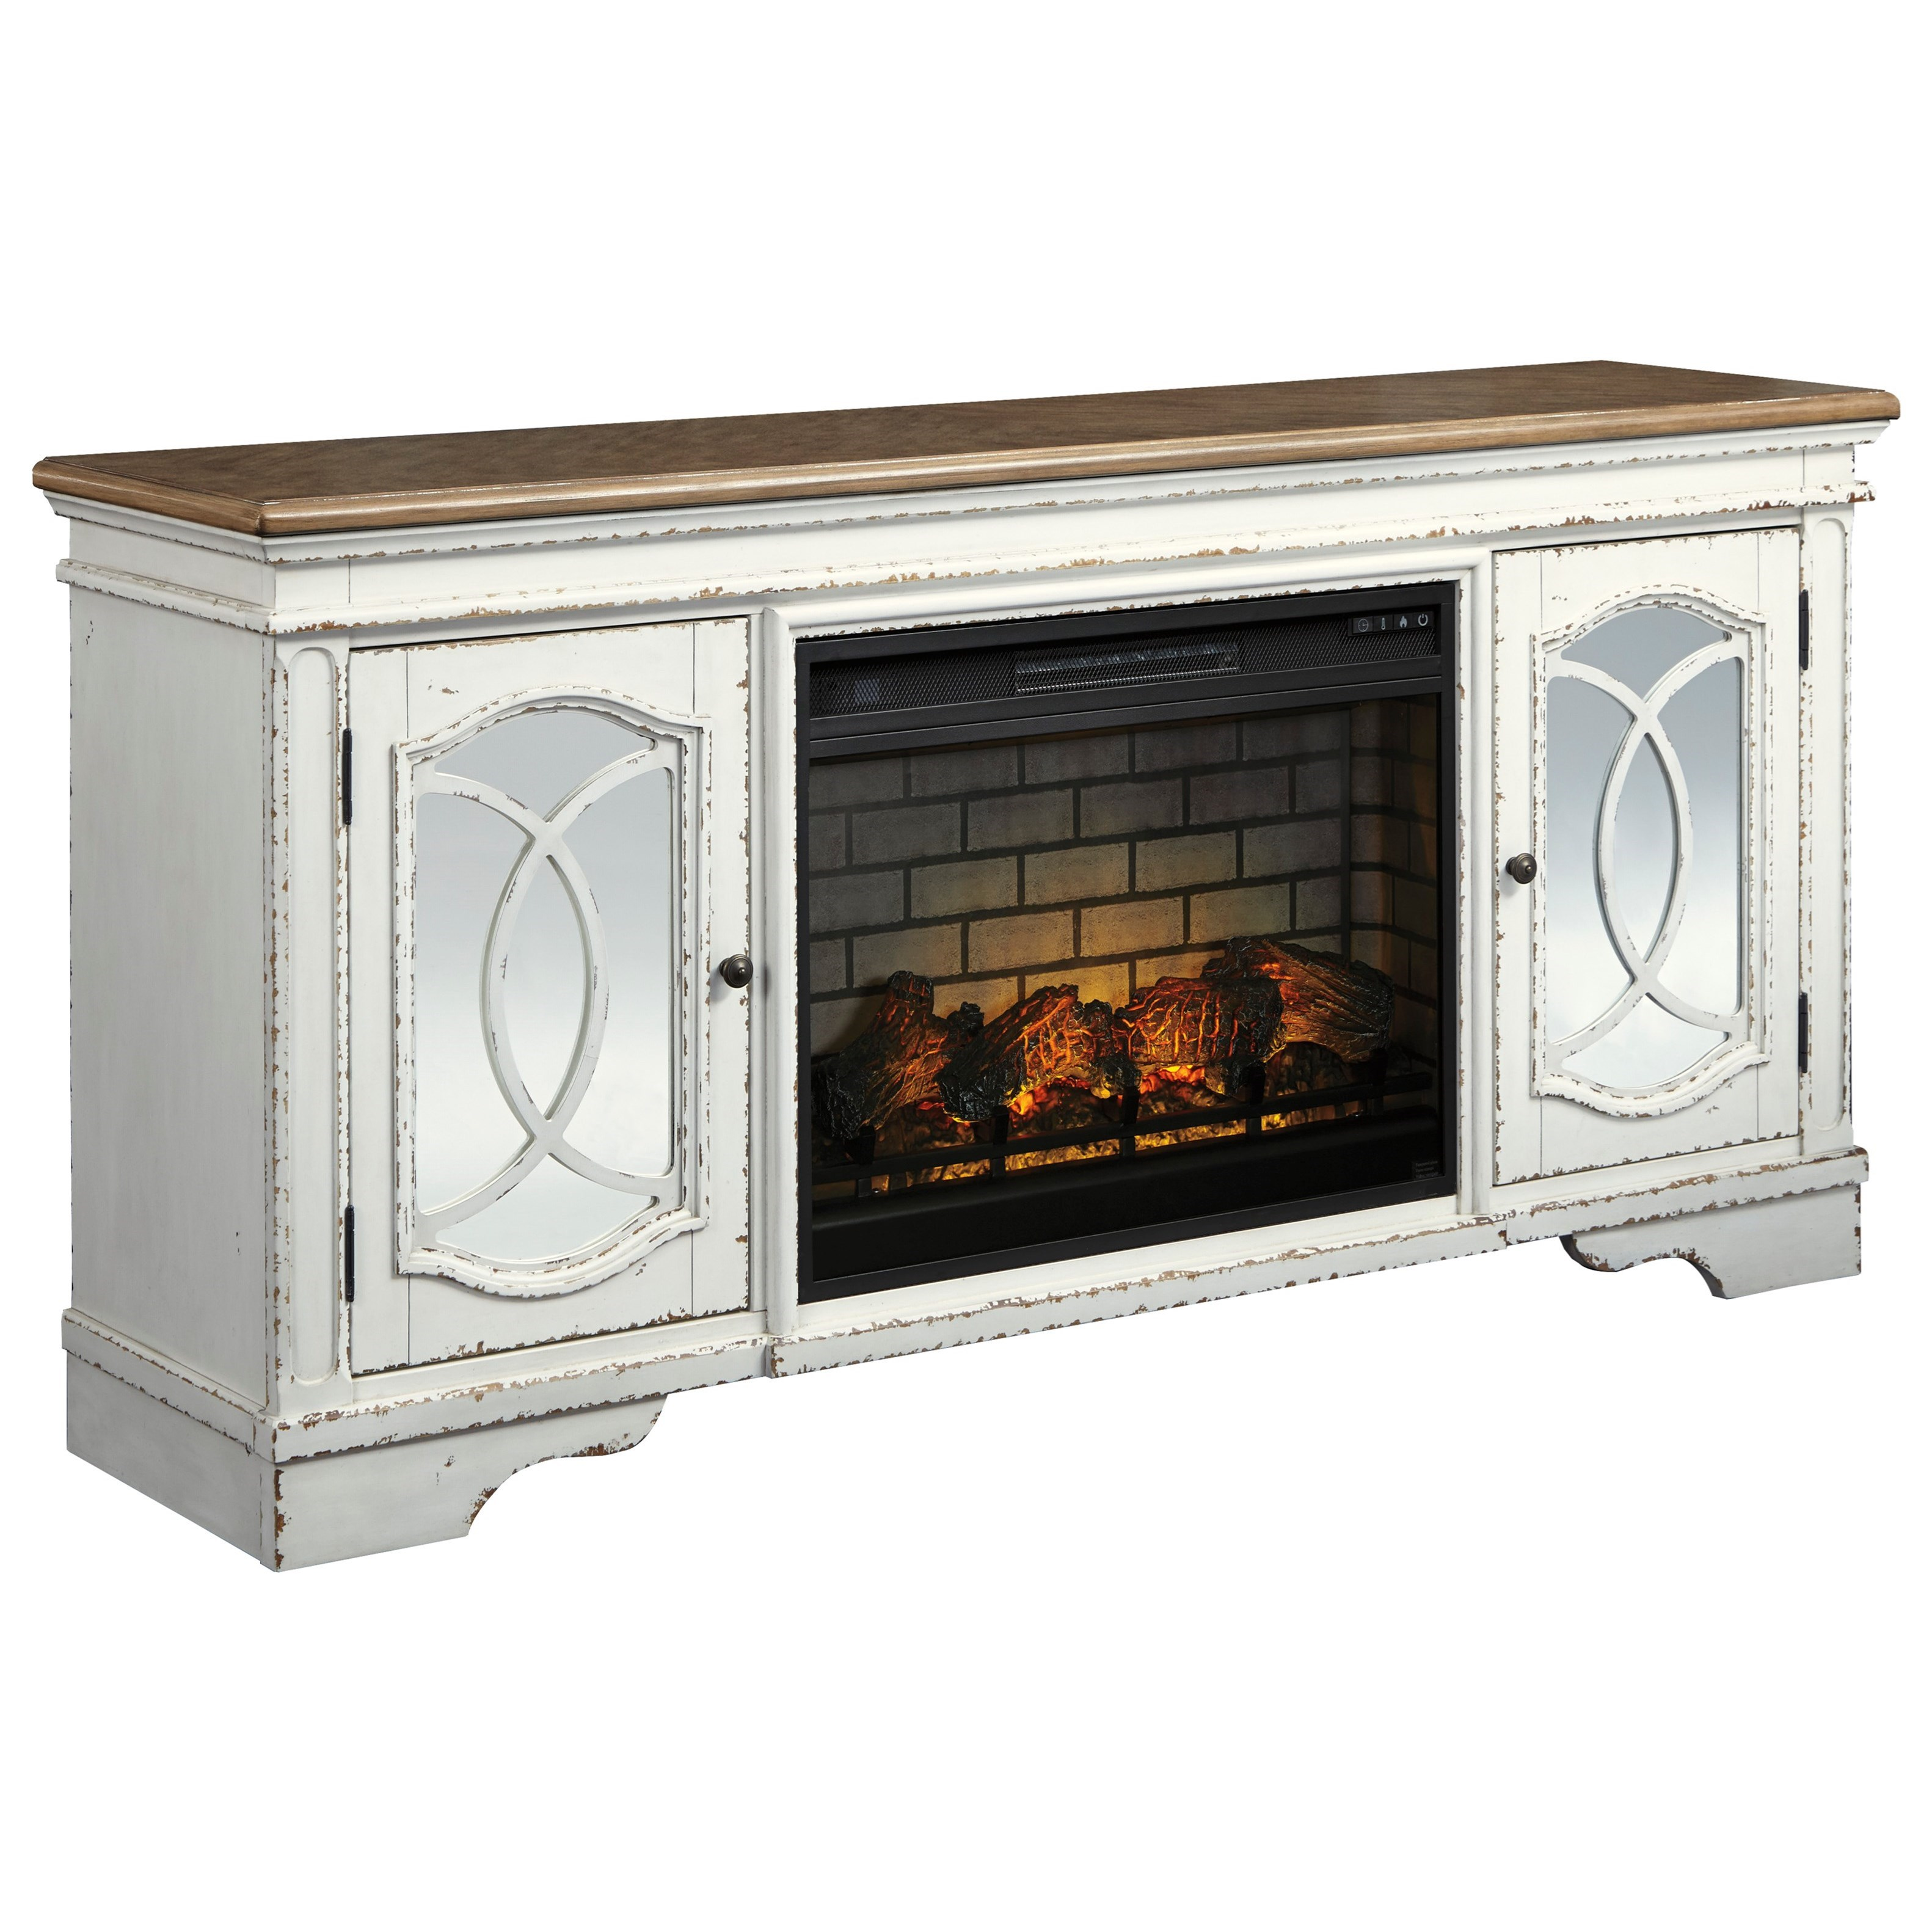 Realyn Extra Large TV Stand with Fireplace Insert by Ashley (Signature Design) at Johnny Janosik